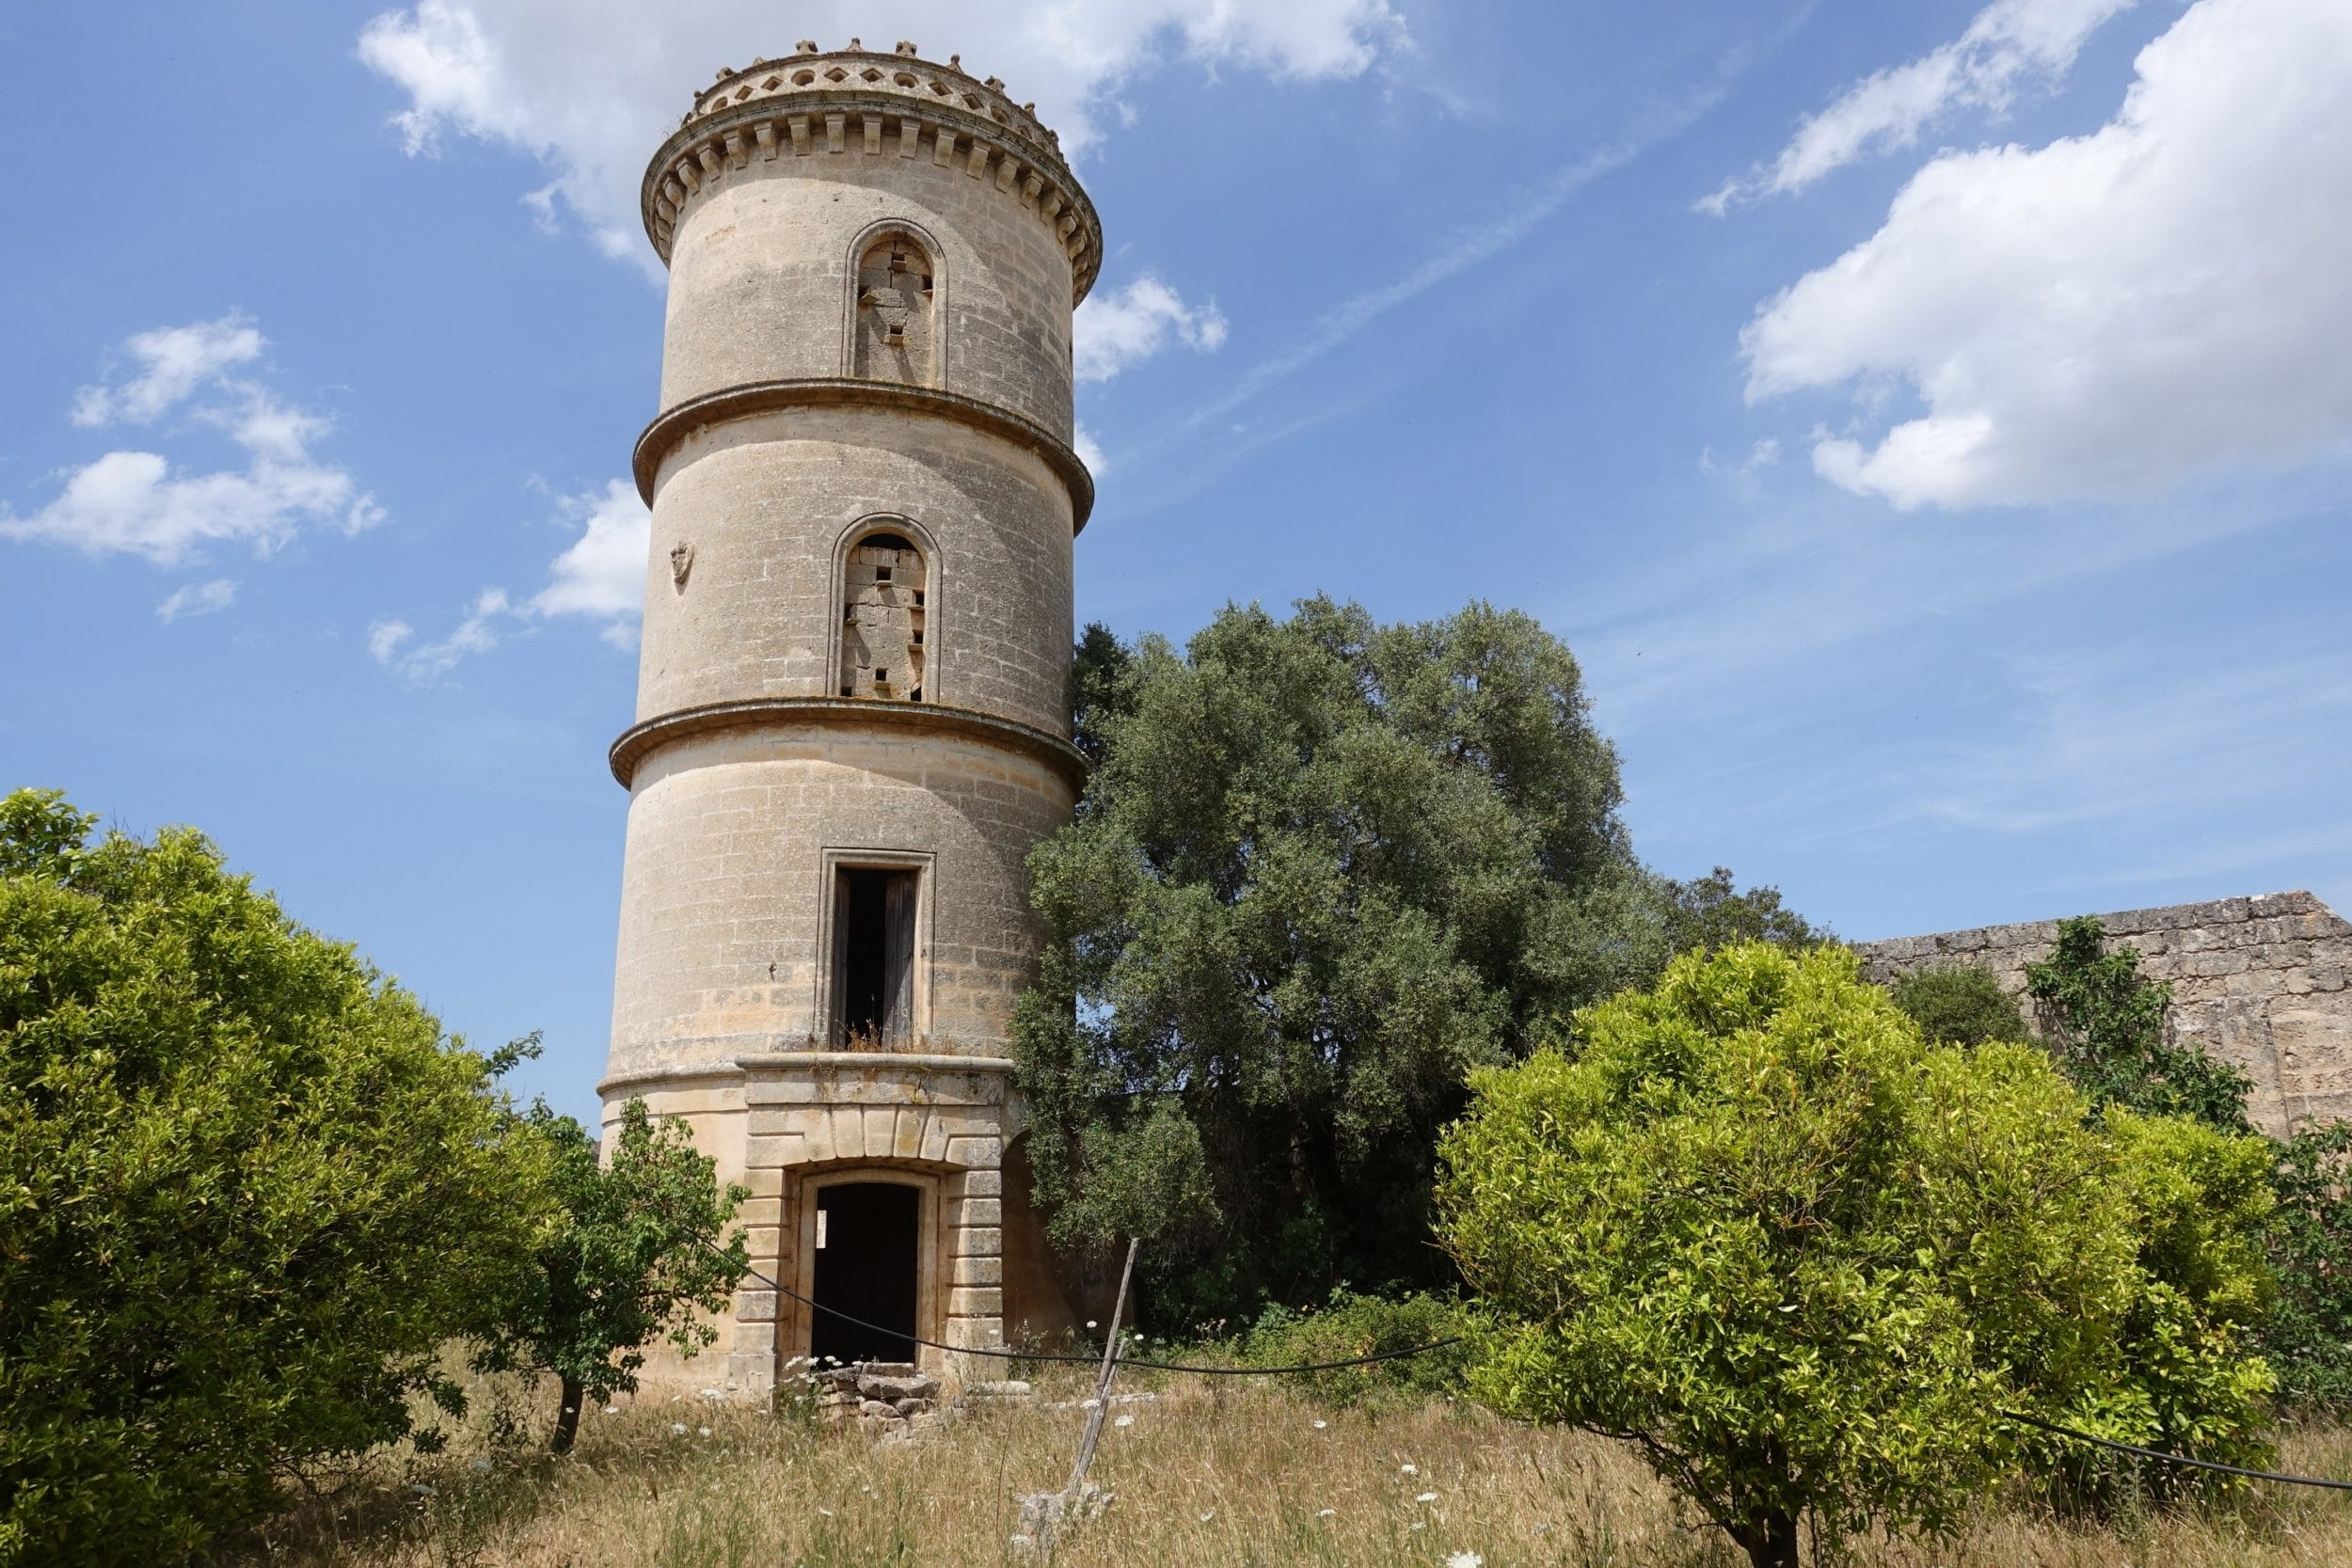 The water tower at a historic villa in Puglia that Amberlair will turn into the region's first luxury boutique hotel.